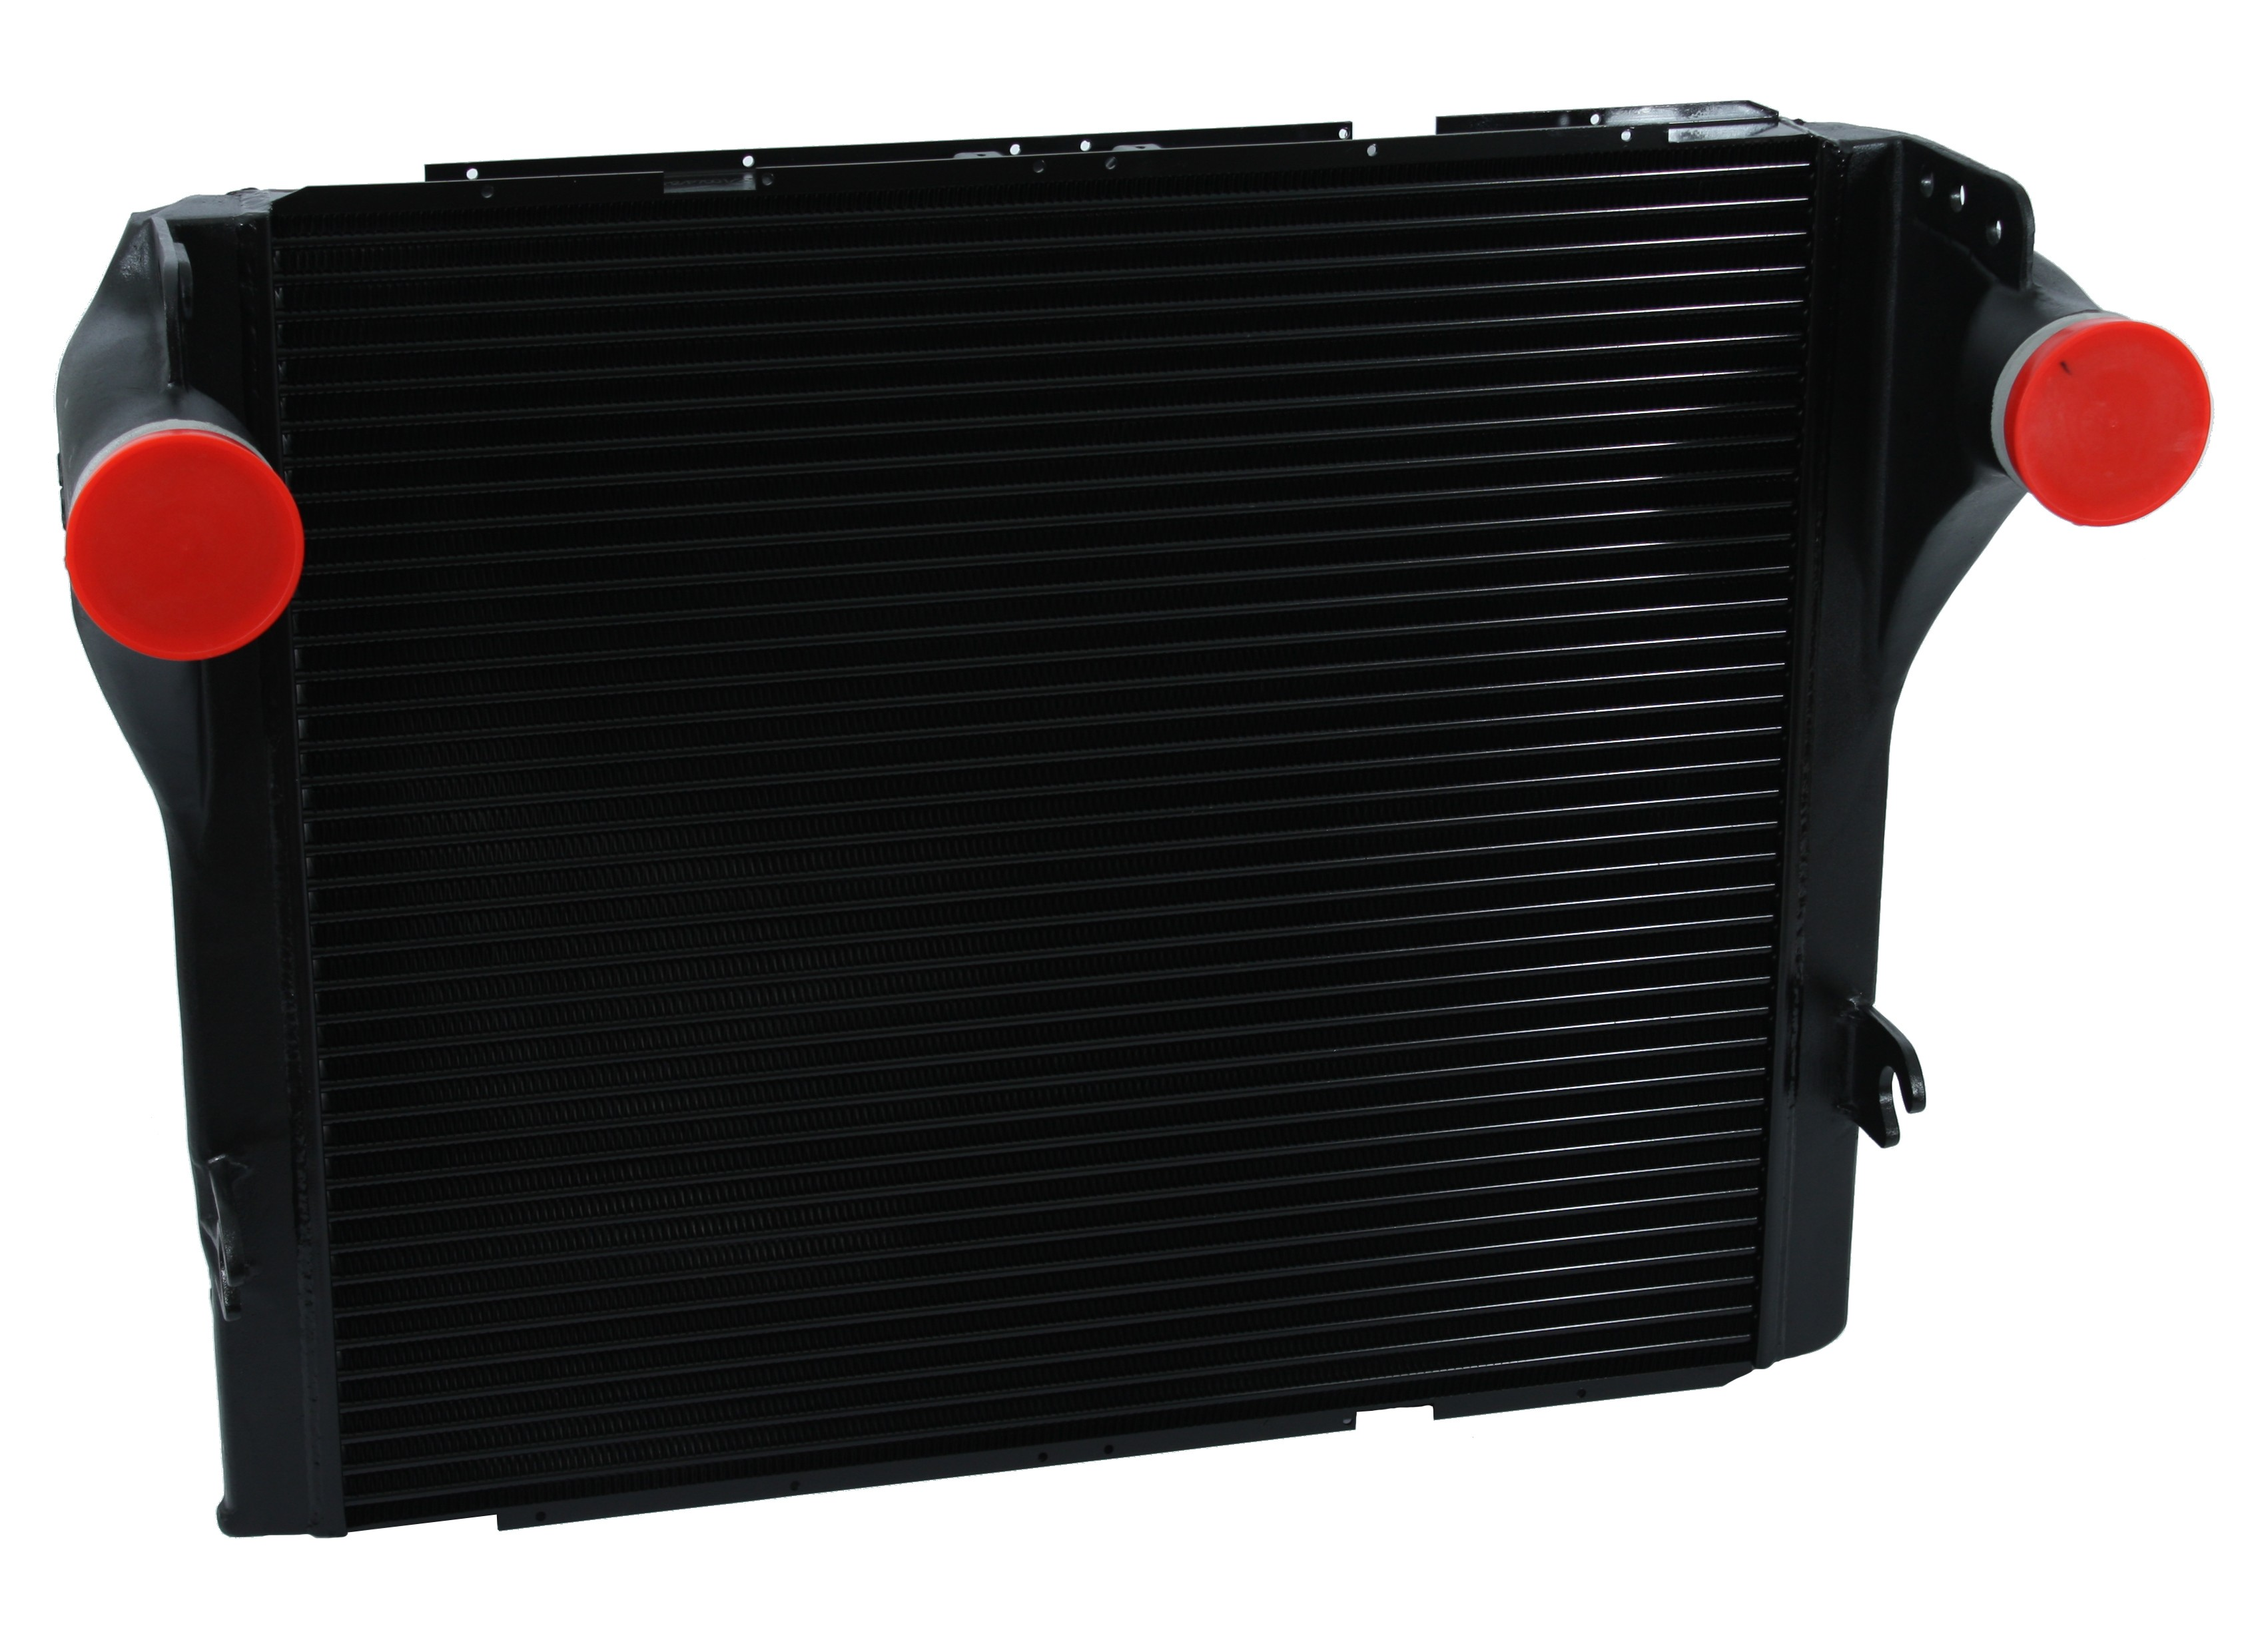 PETERBILT | KENWORTH BAR & PLATE CHARGE AIR COOLE: 2008-2014 KW900, 2008-2015 384, 386